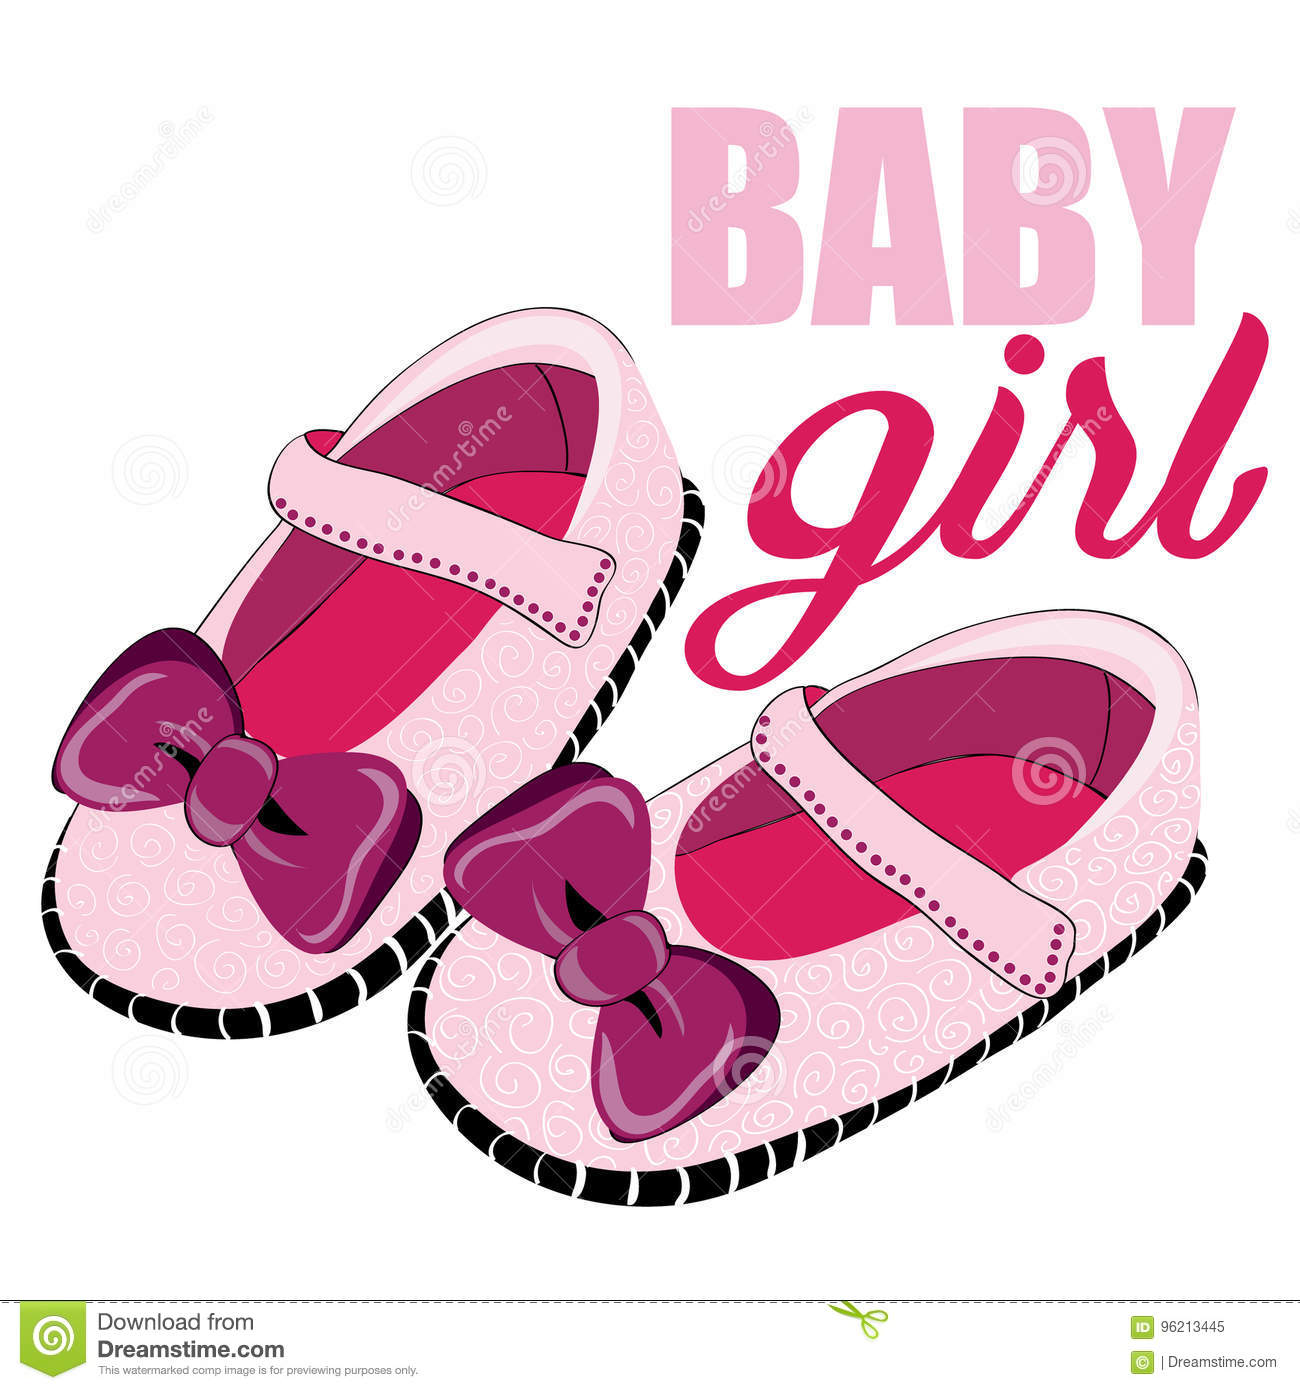 bafc534c37e9a Cute pink shoes for newborn girl. Baby Girl. Vector illustration on white  background